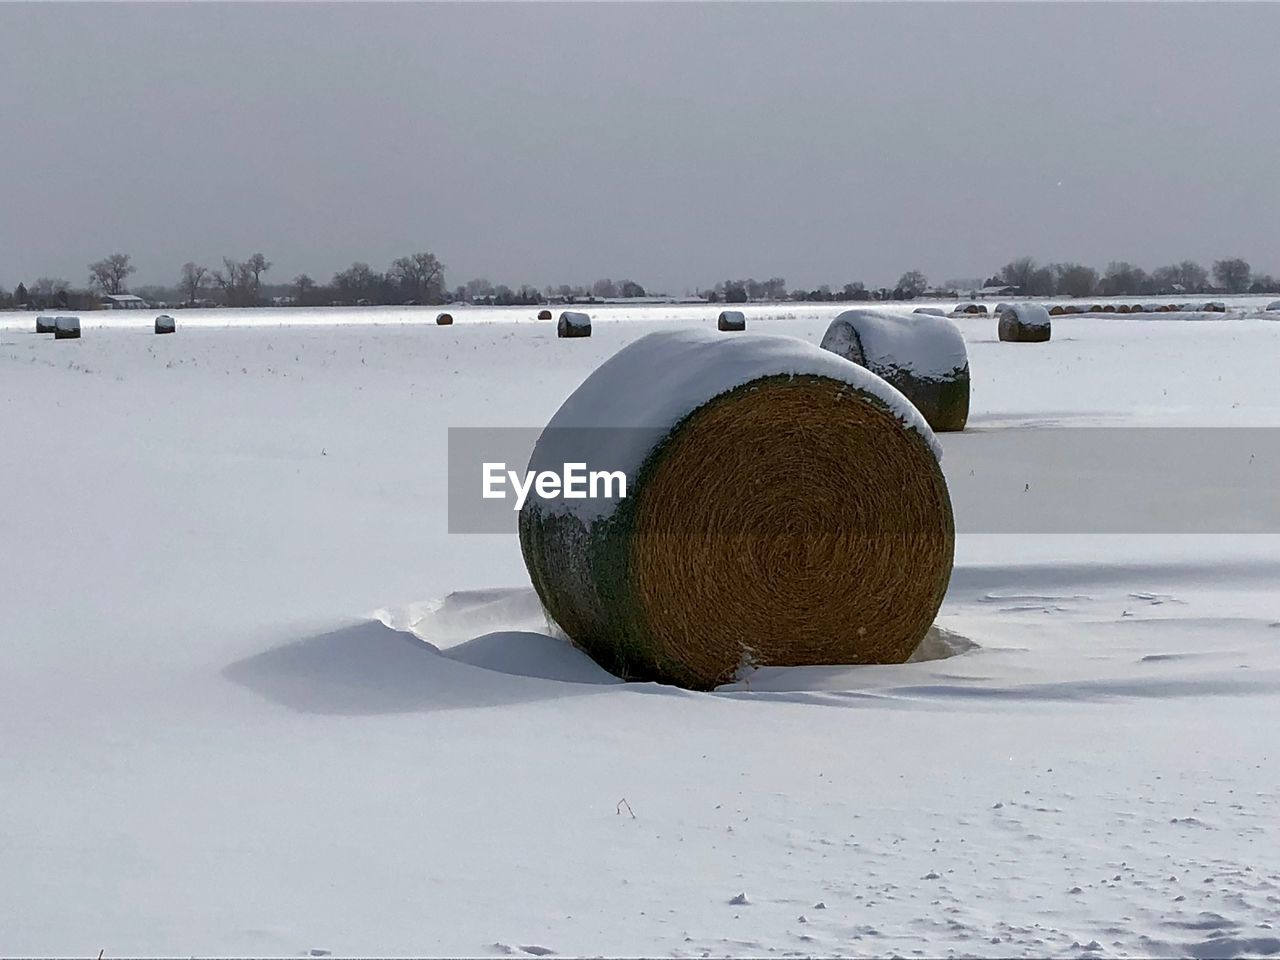 snow, winter, cold temperature, nature, outdoors, field, day, no people, tranquility, beauty in nature, water, landscape, sky, hay bale